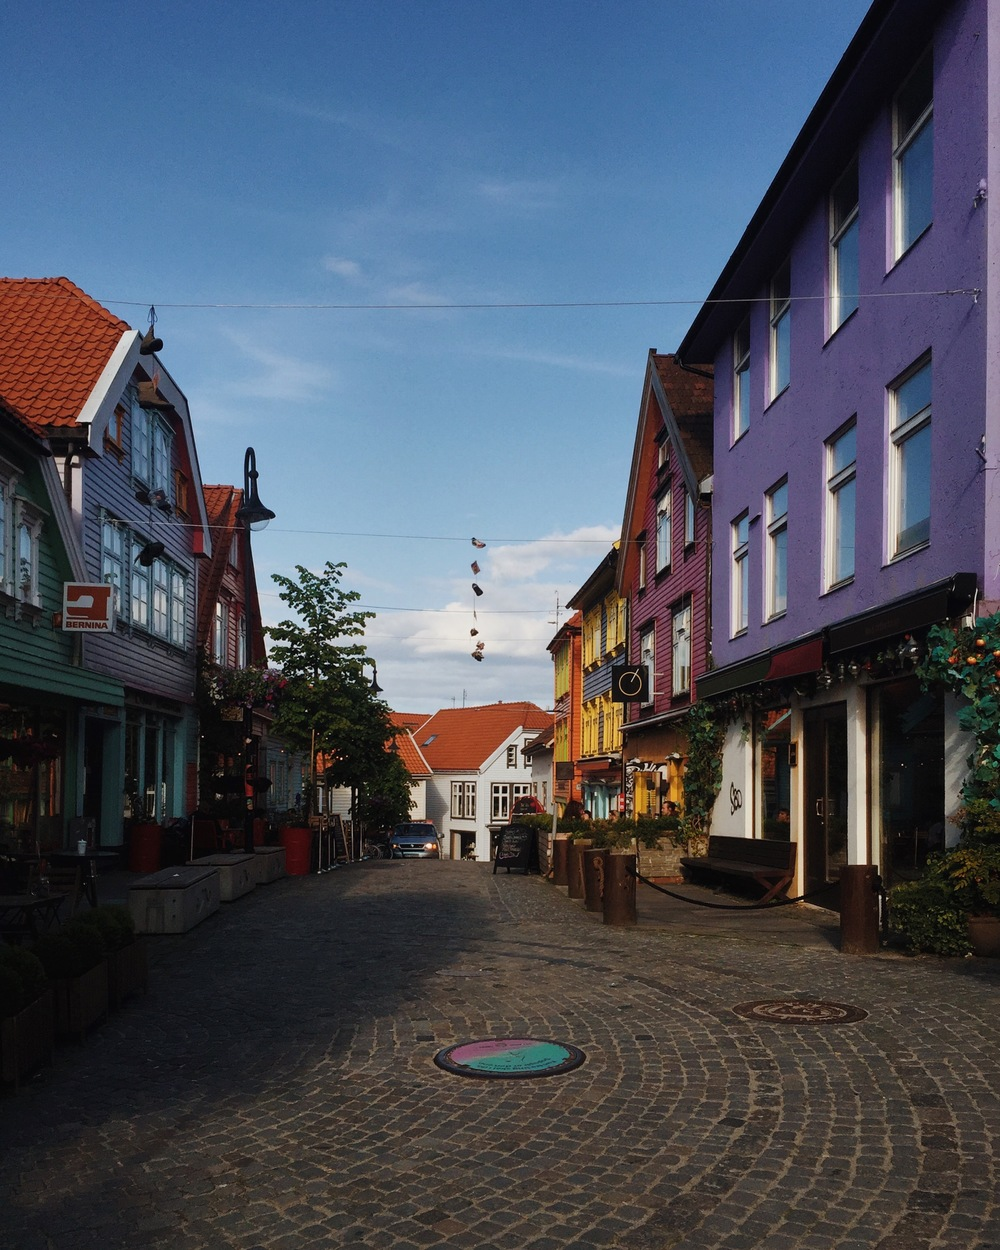 The street I stayed overnight in Stavanger. Pretty much the most colorful street in the town.